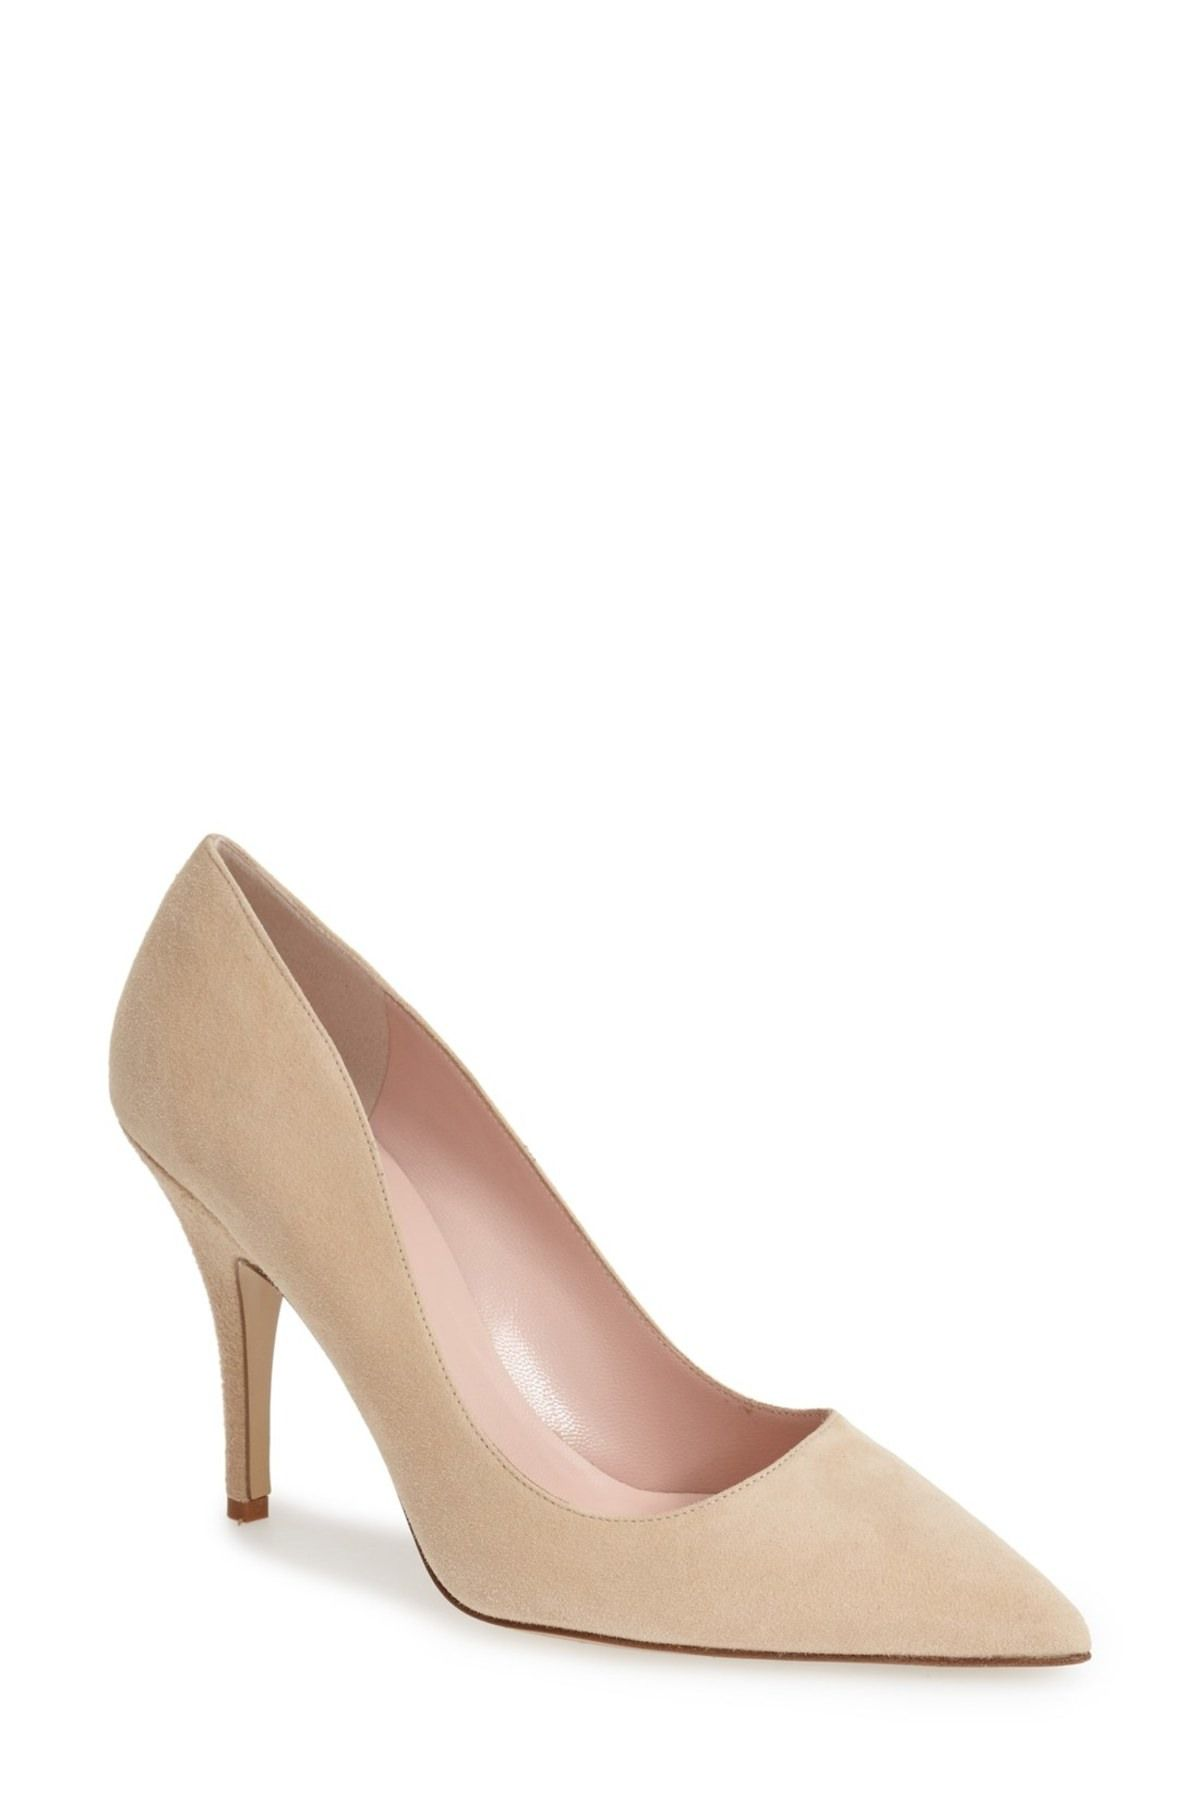 03fd2d4a550d kate spade new york - licorice too printed pump is now 50% off. Free  Shipping on orders over  100.